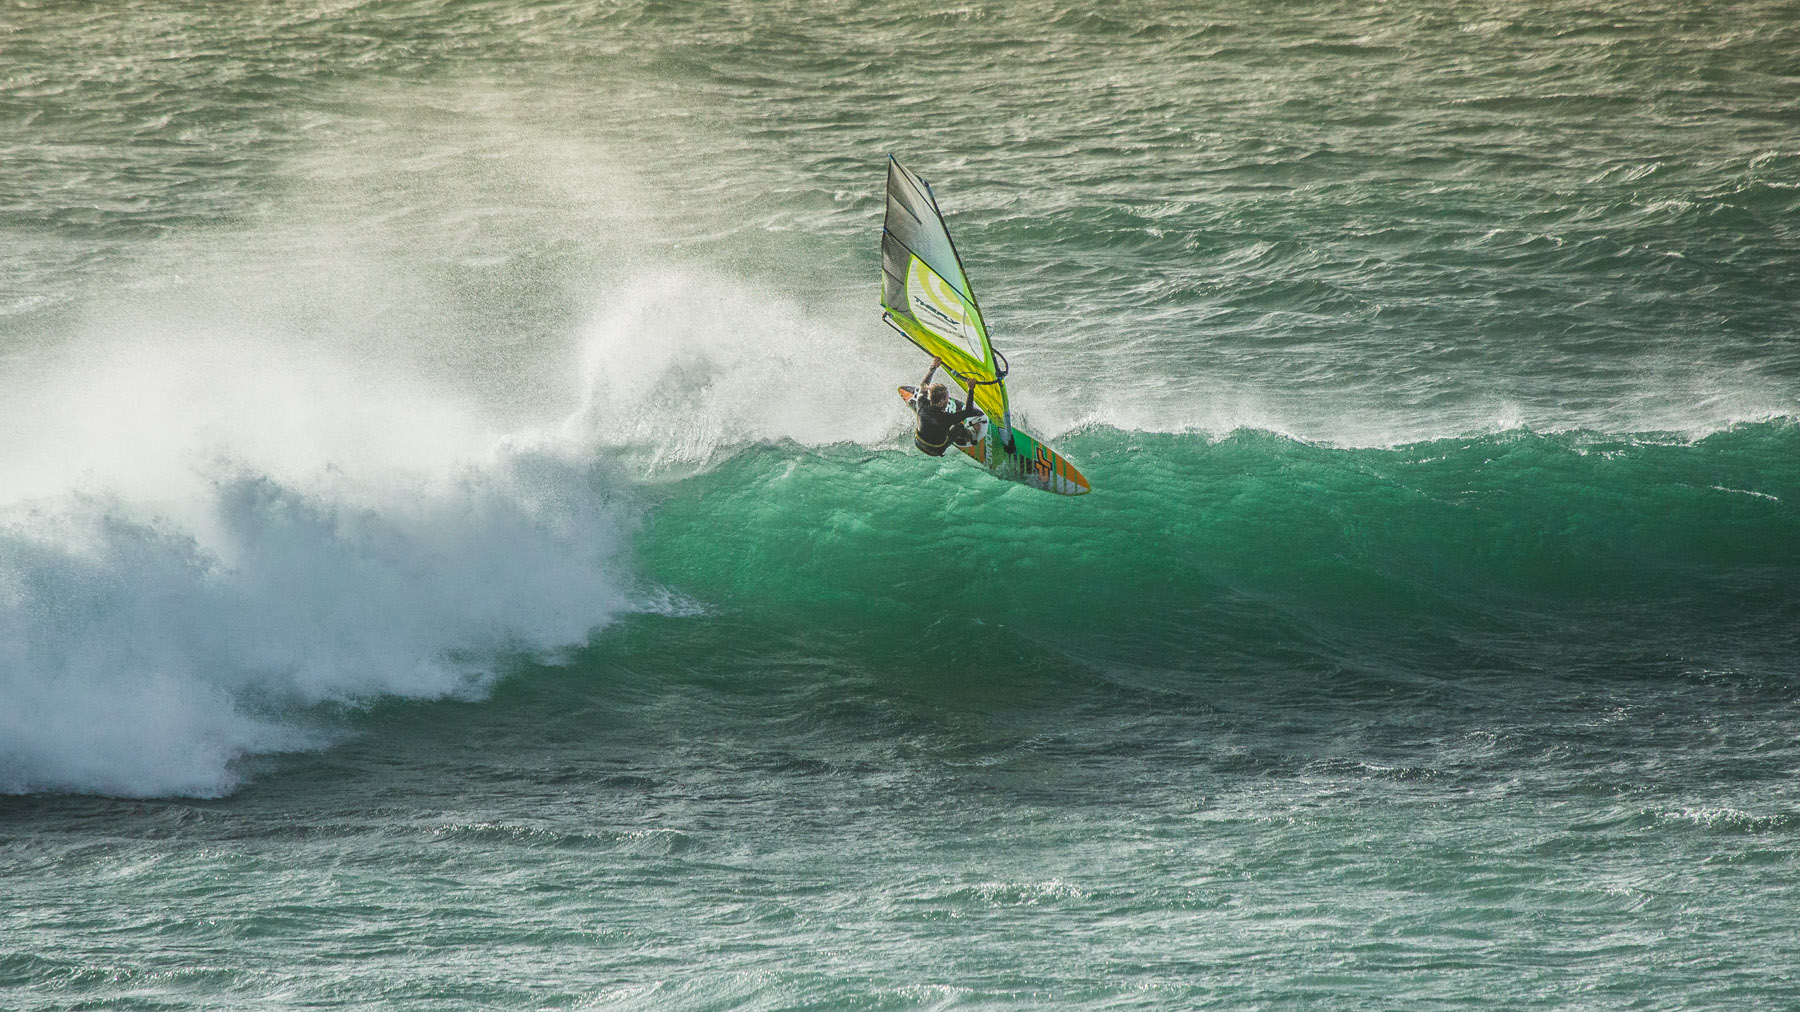 alastair mcleod windsurfing cat bay phillip island